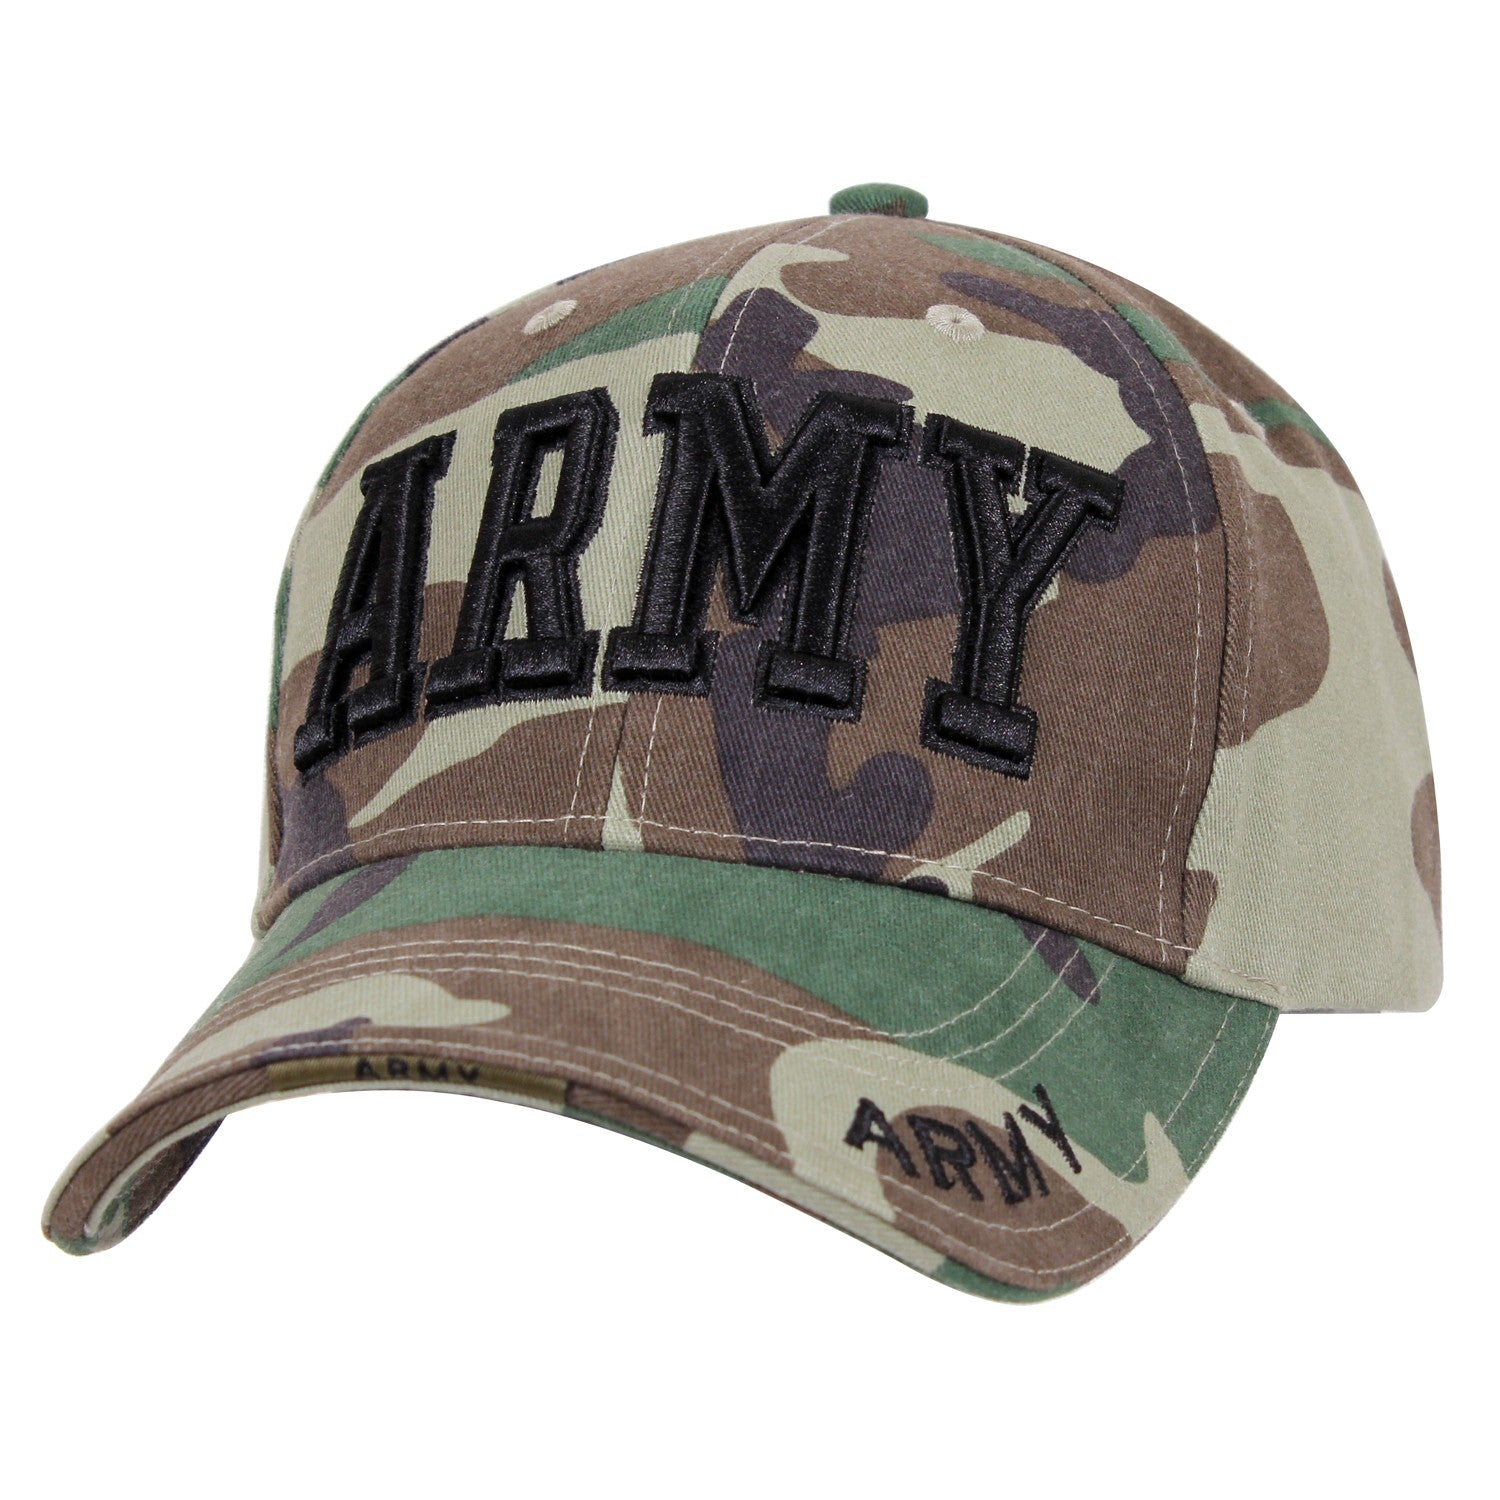 Army Text Hat Woodland Camouflage